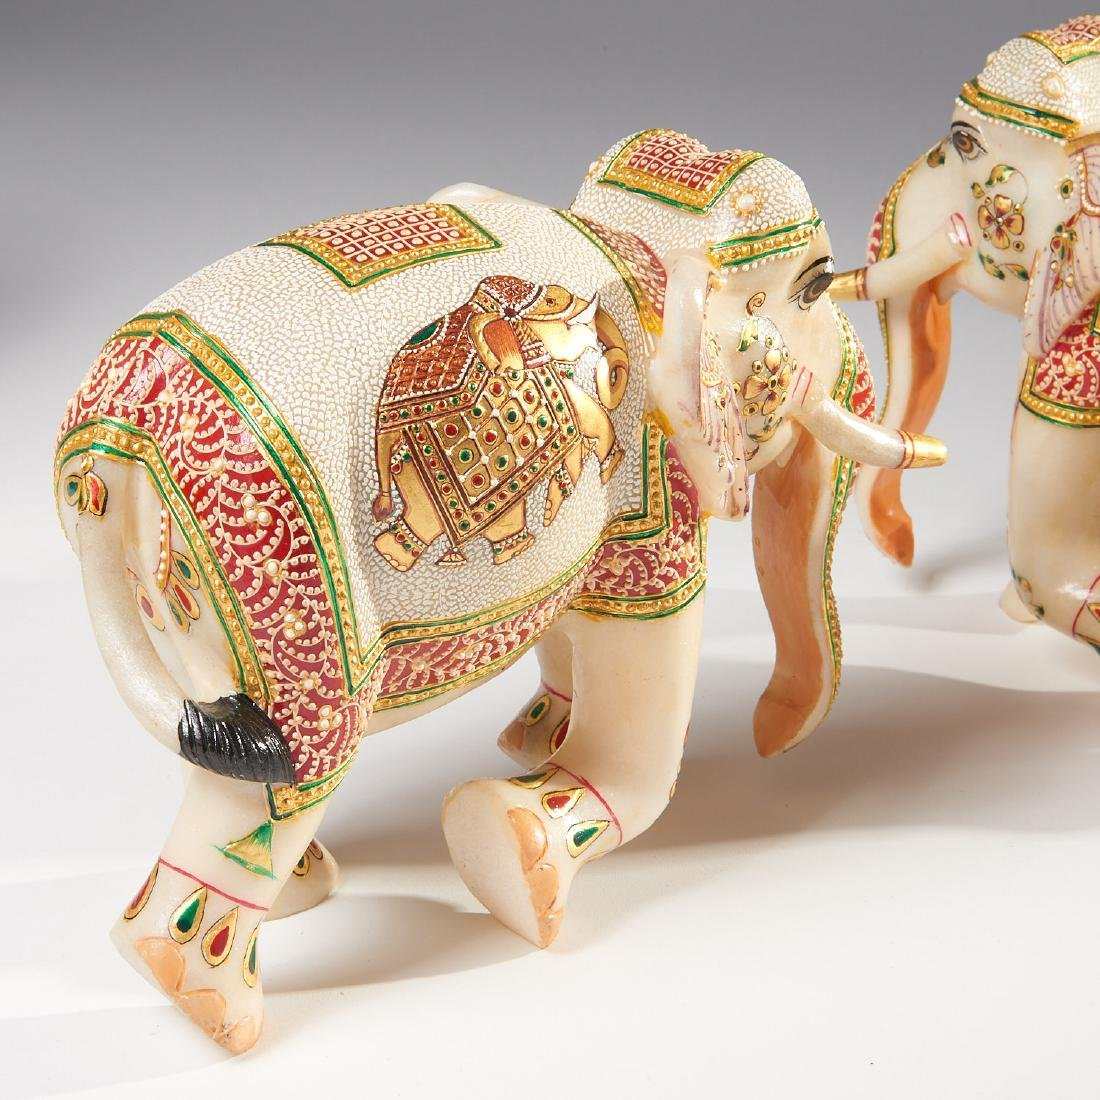 Group Indian carved marble ornaments - 3